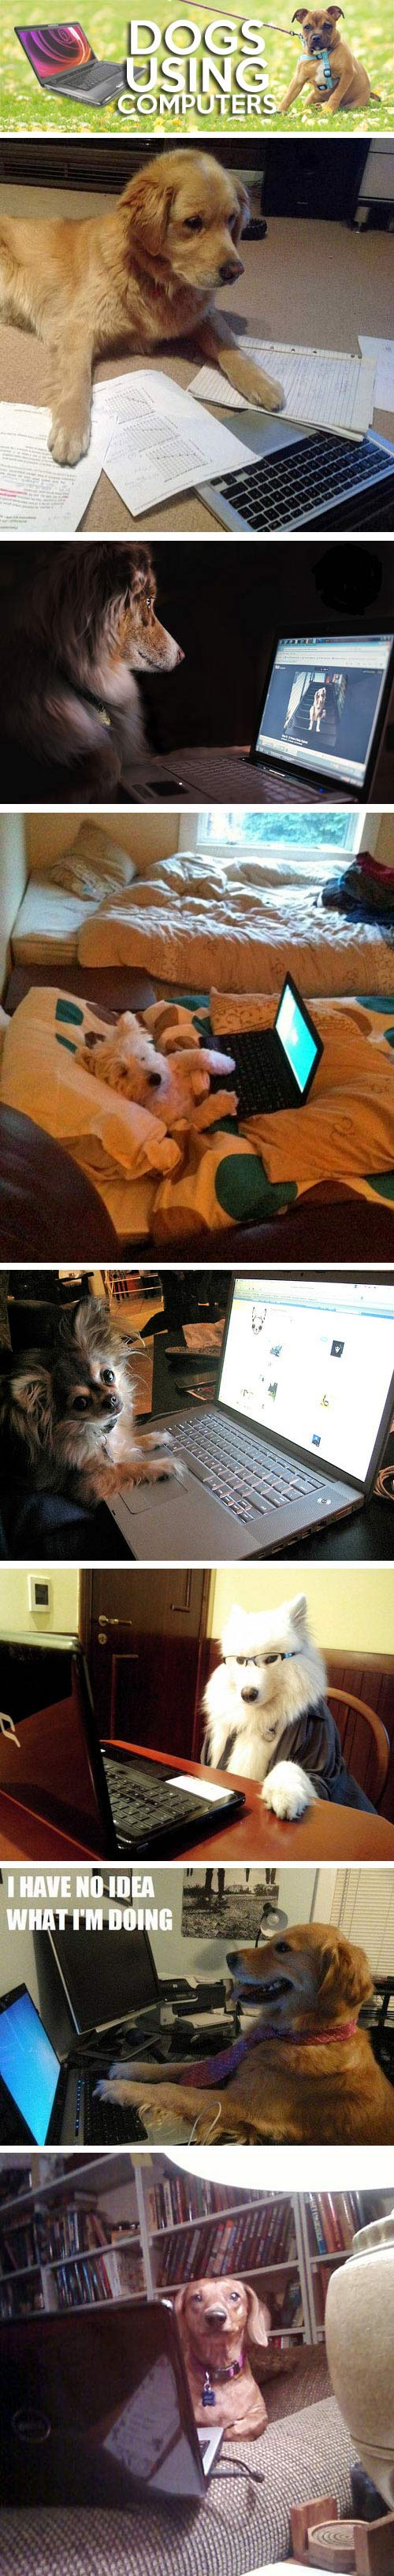 Dogs using computers...